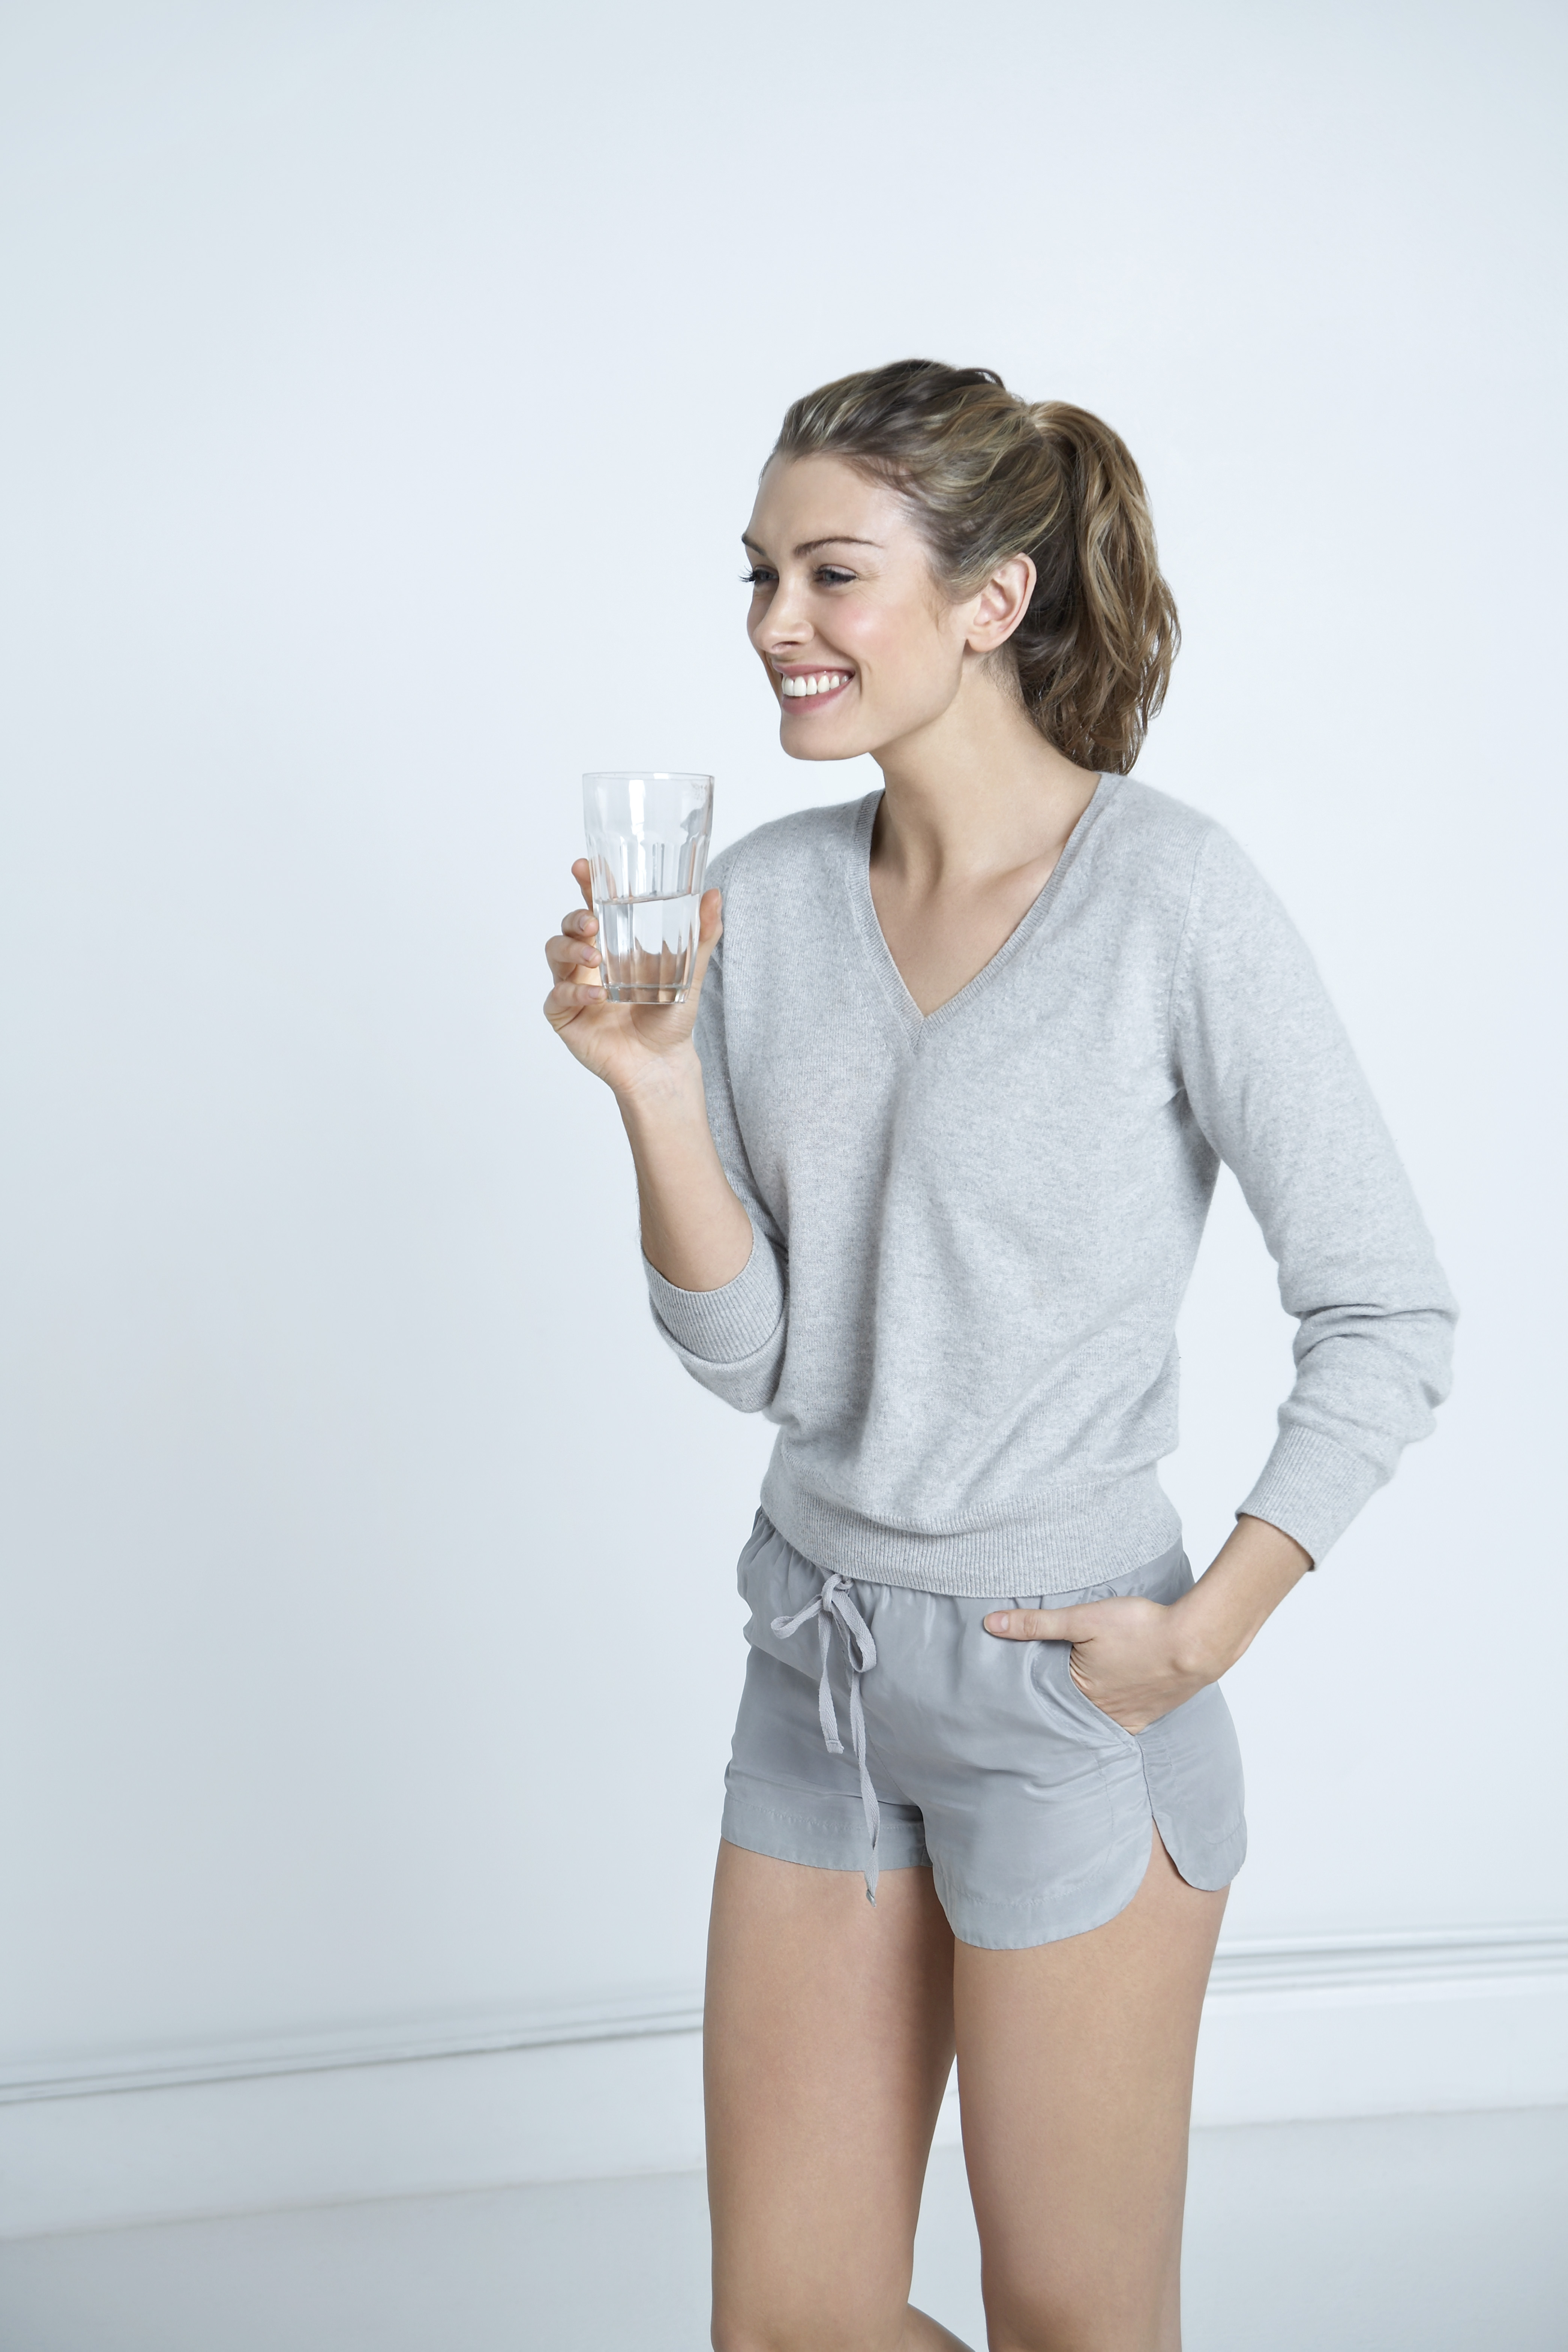 woman drinking water out of a glass